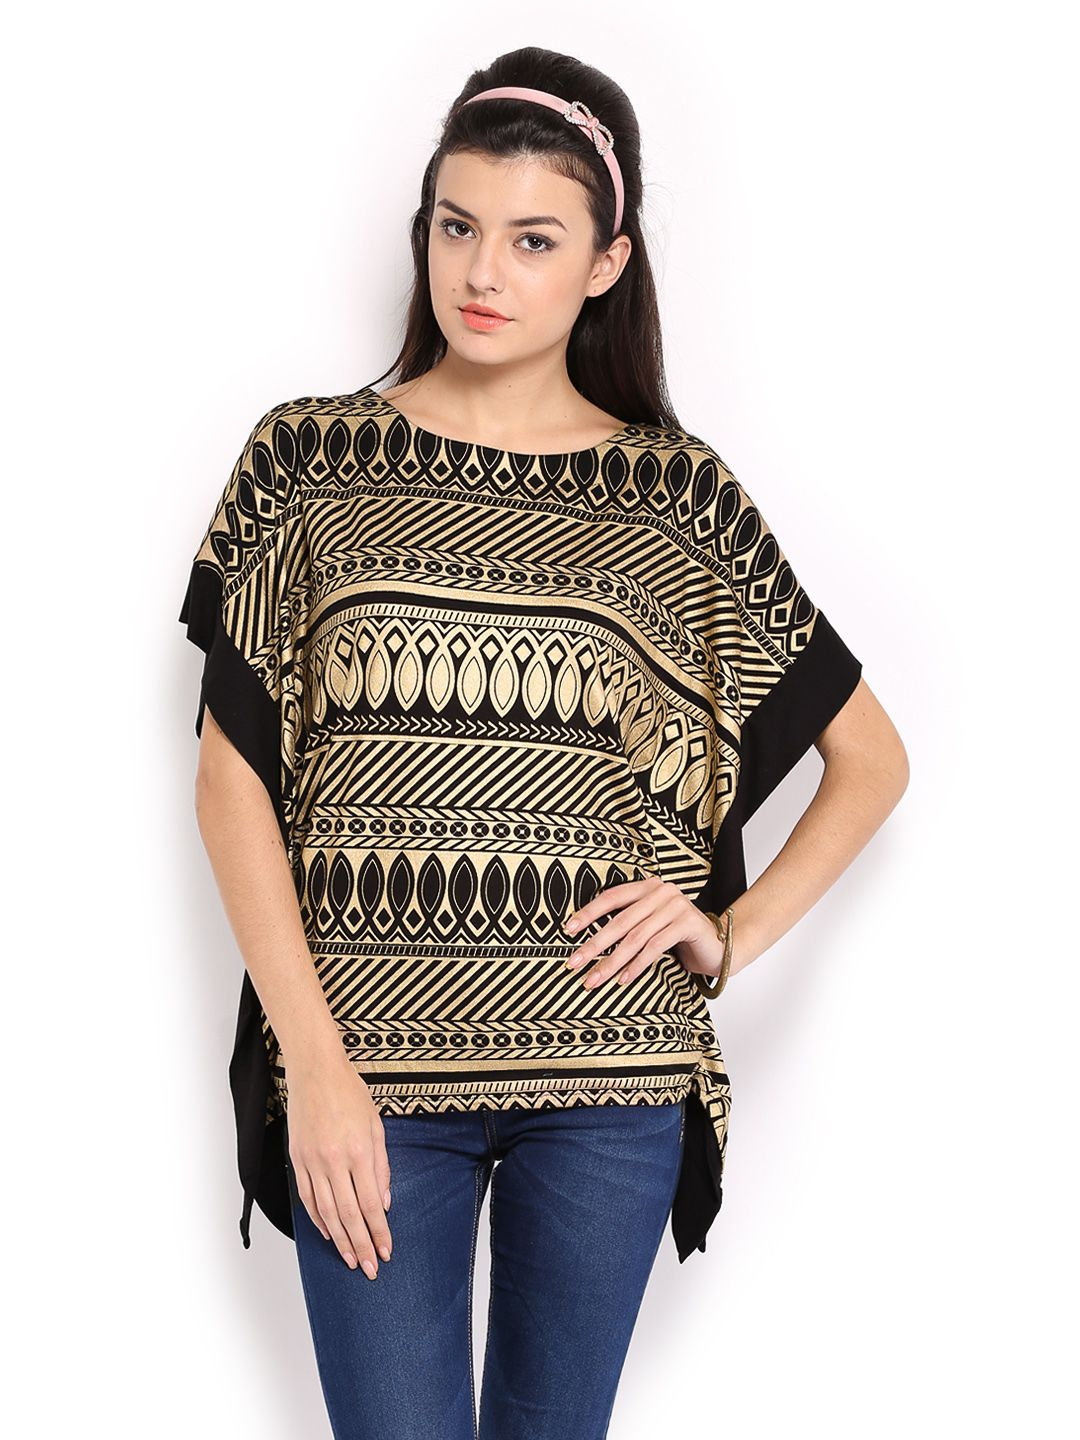 Buy Mirage Black Printed Top - 310 - Apparel for Women from Mirage at Rs. 779